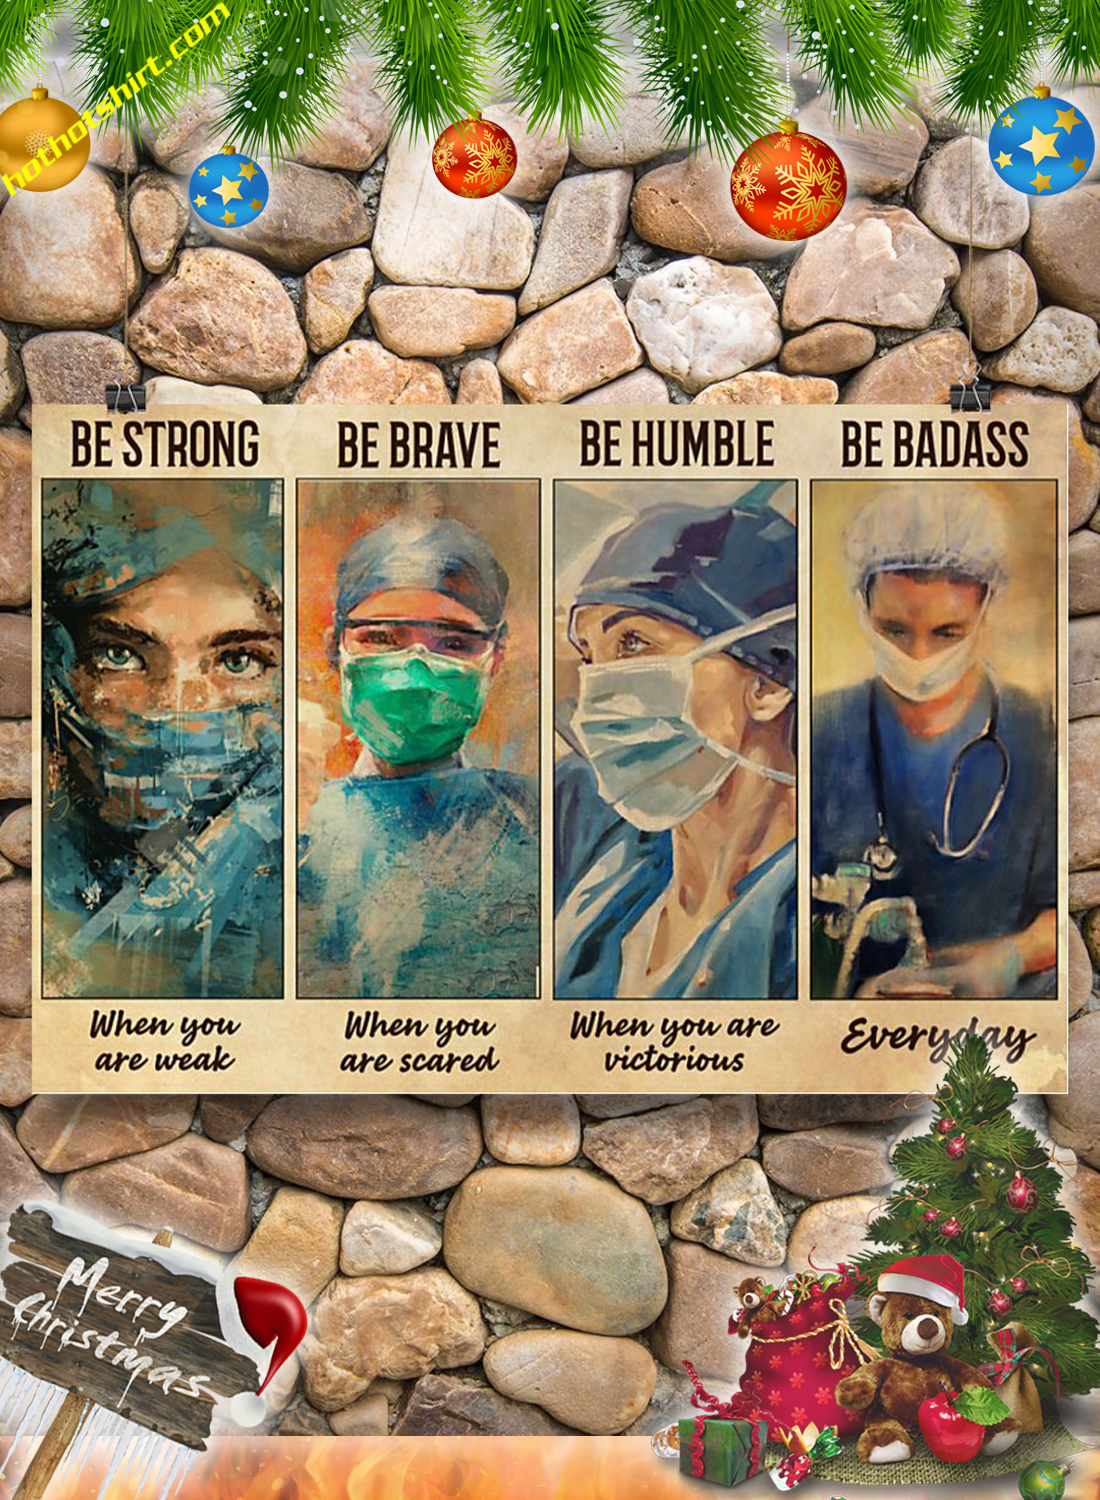 Female Physicians Be strong be brave be humble be badass poster 3